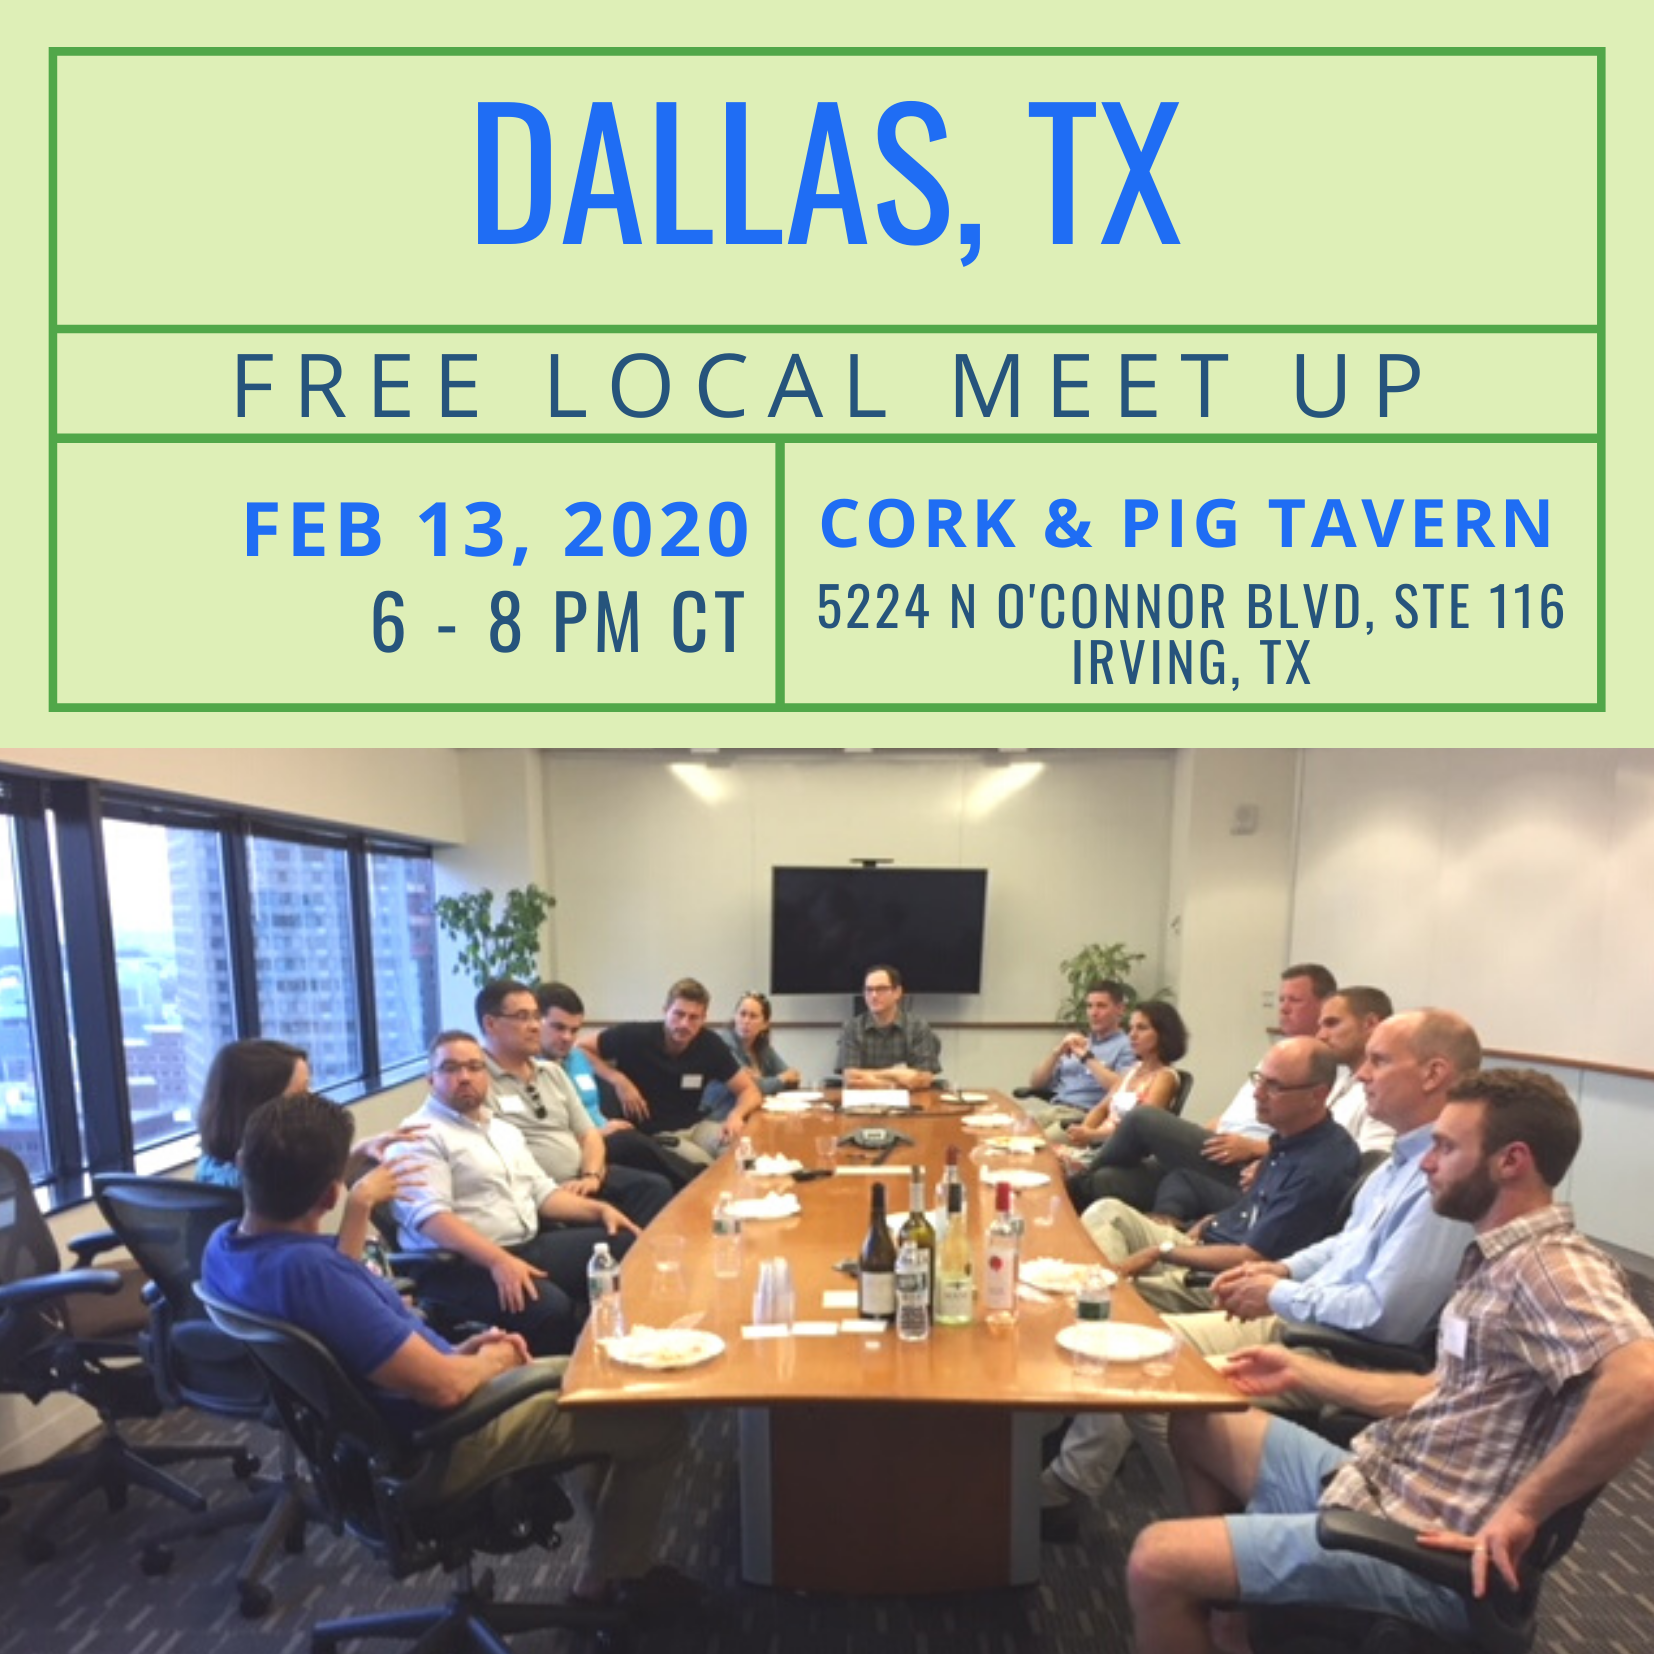 Free Local Meet-Up in Dallas, TX on Thursday, February 13